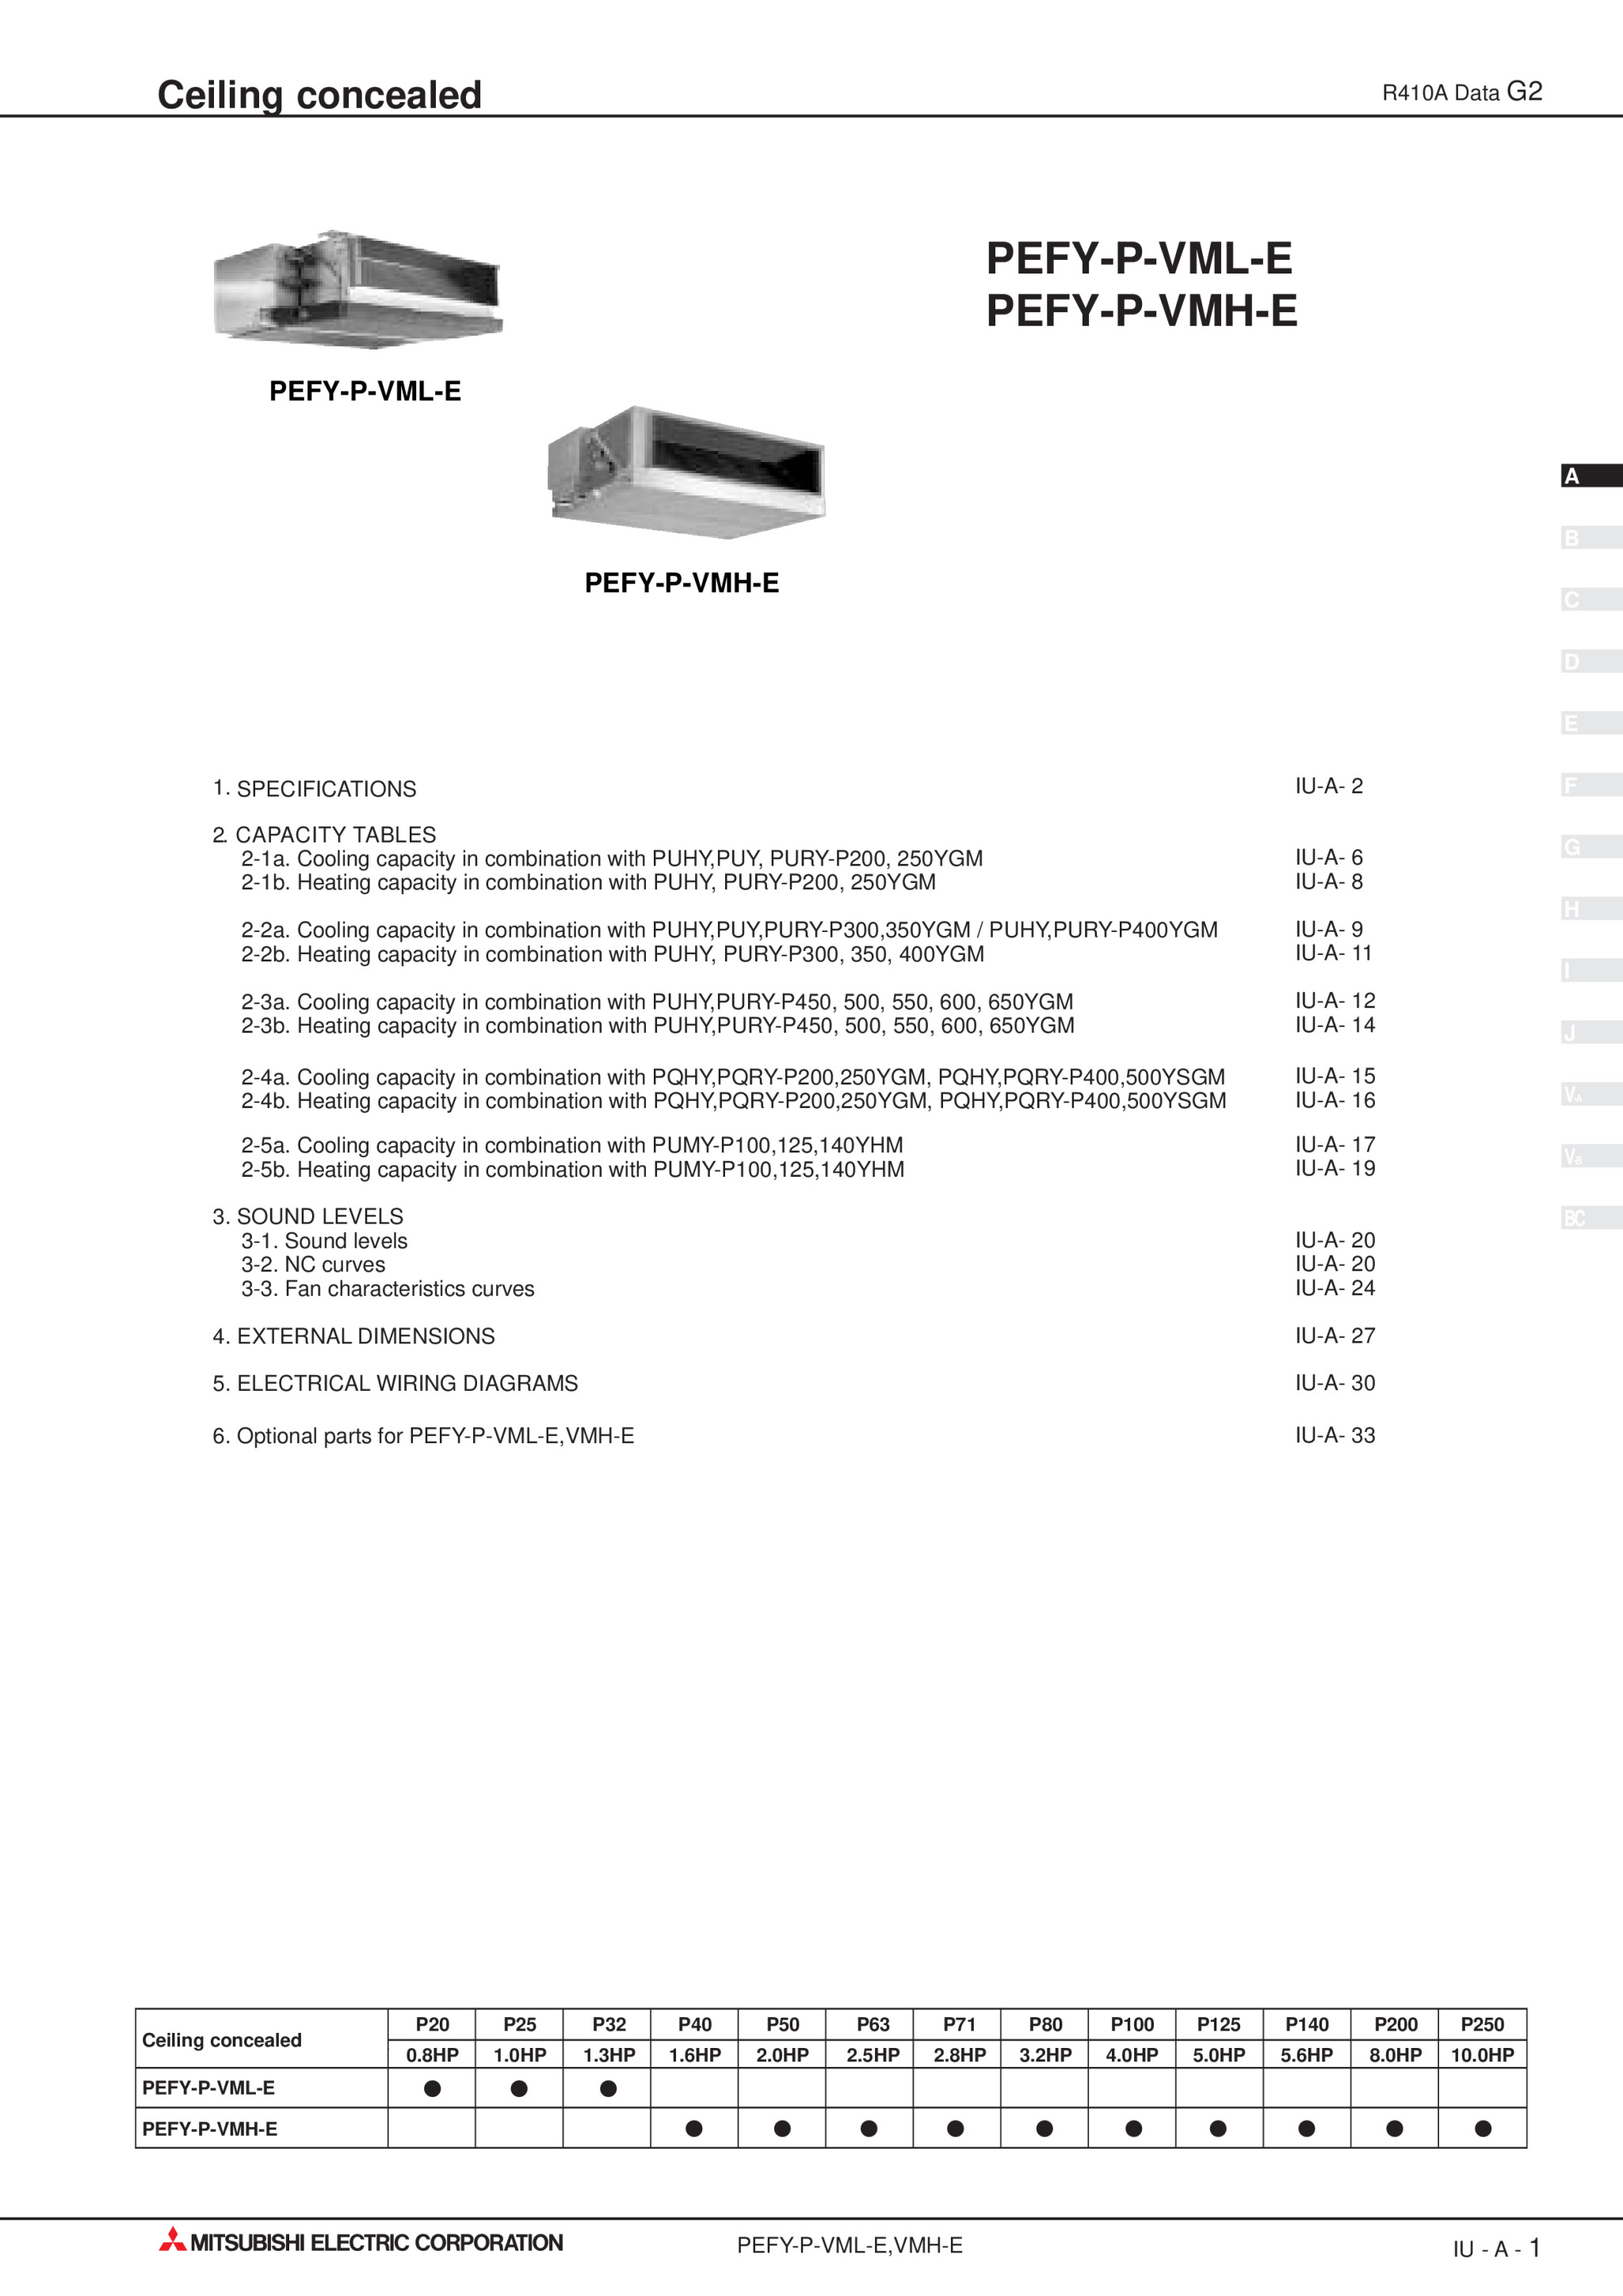 Pqhy Ygm A Databook Mitsubishi Electric P200 Wiring Diagram Page 6 Zoom In